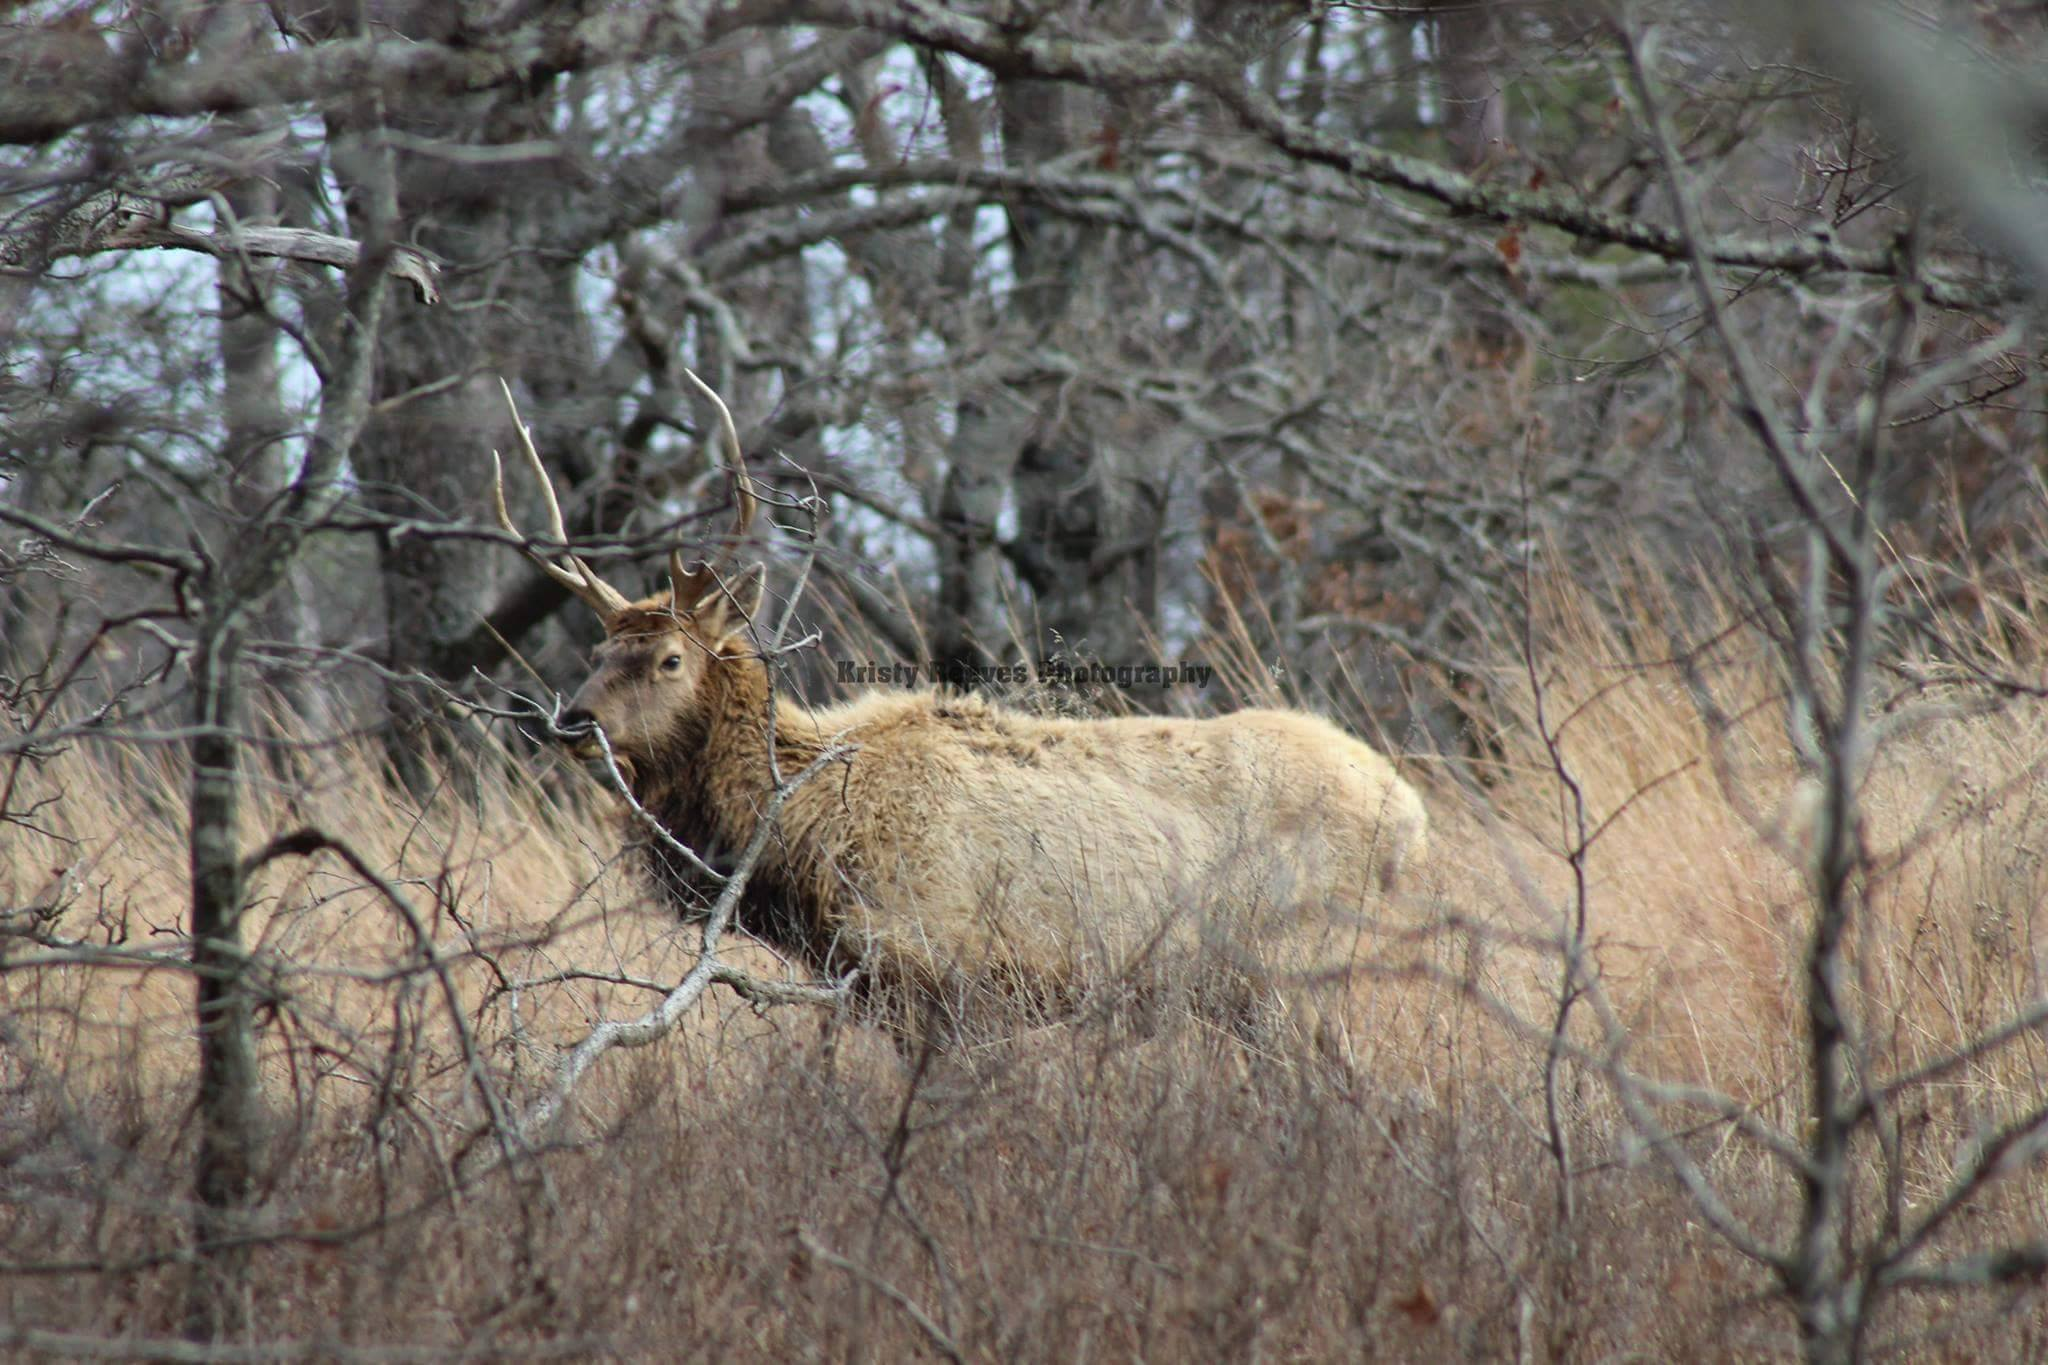 Steve Russell: Cherokee citizens upset with death of beloved elk